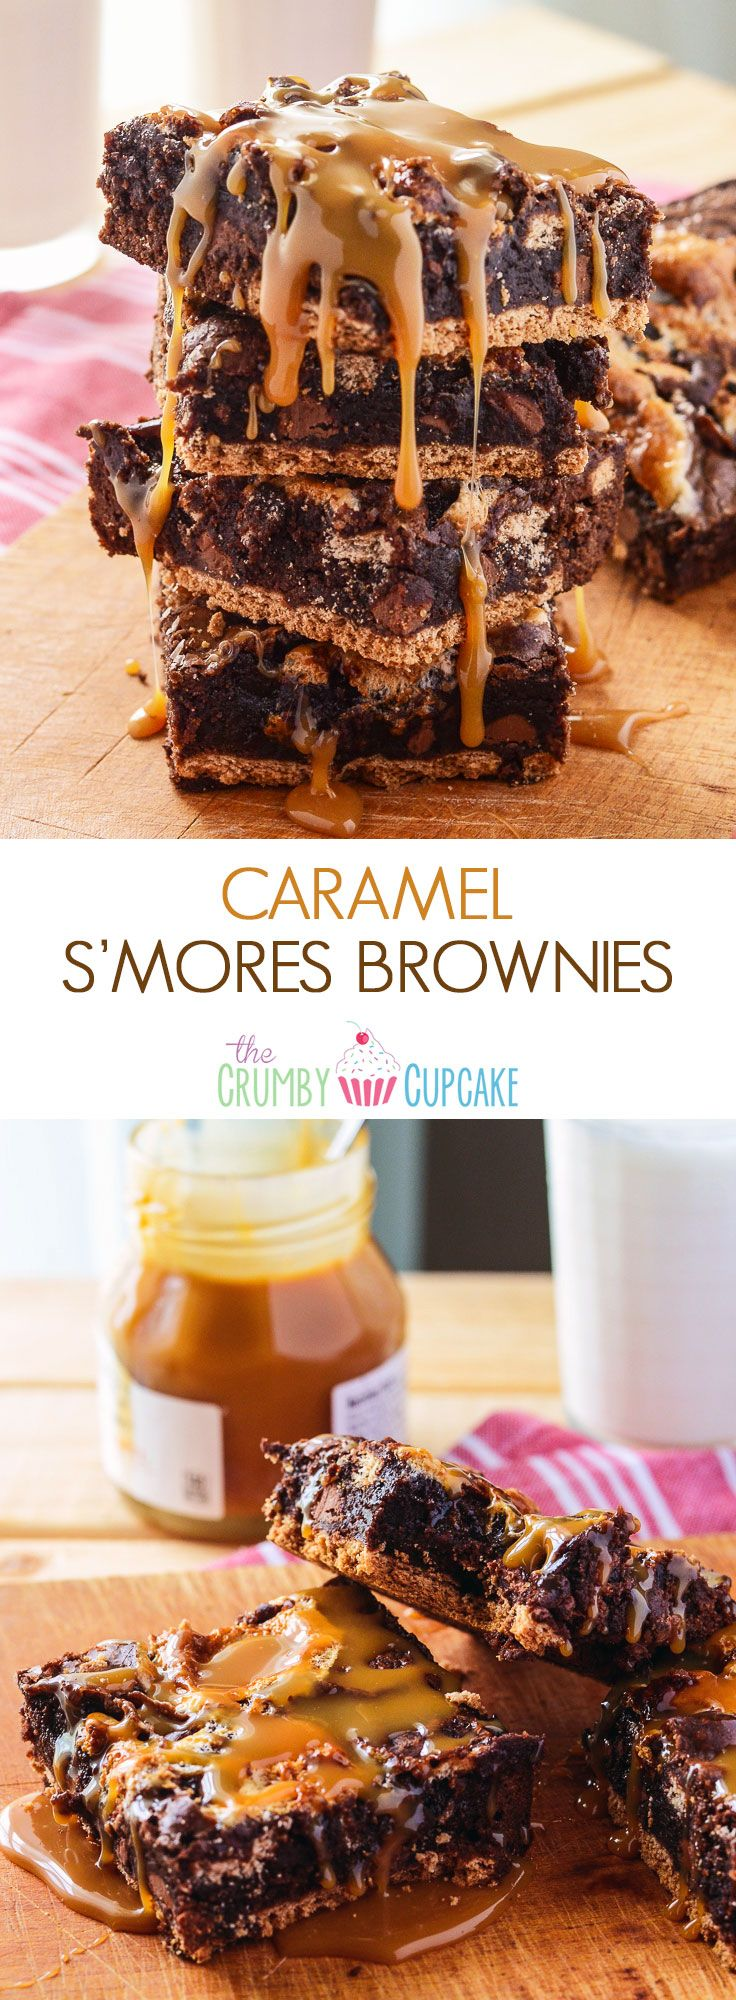 Caramel S'mores Brownies   Amazingly easy gooey s'mores brownies, stuffed with caramel, chocolate chunks & marshmallow, set on a graham cracker crust & drizzled with more caramel.